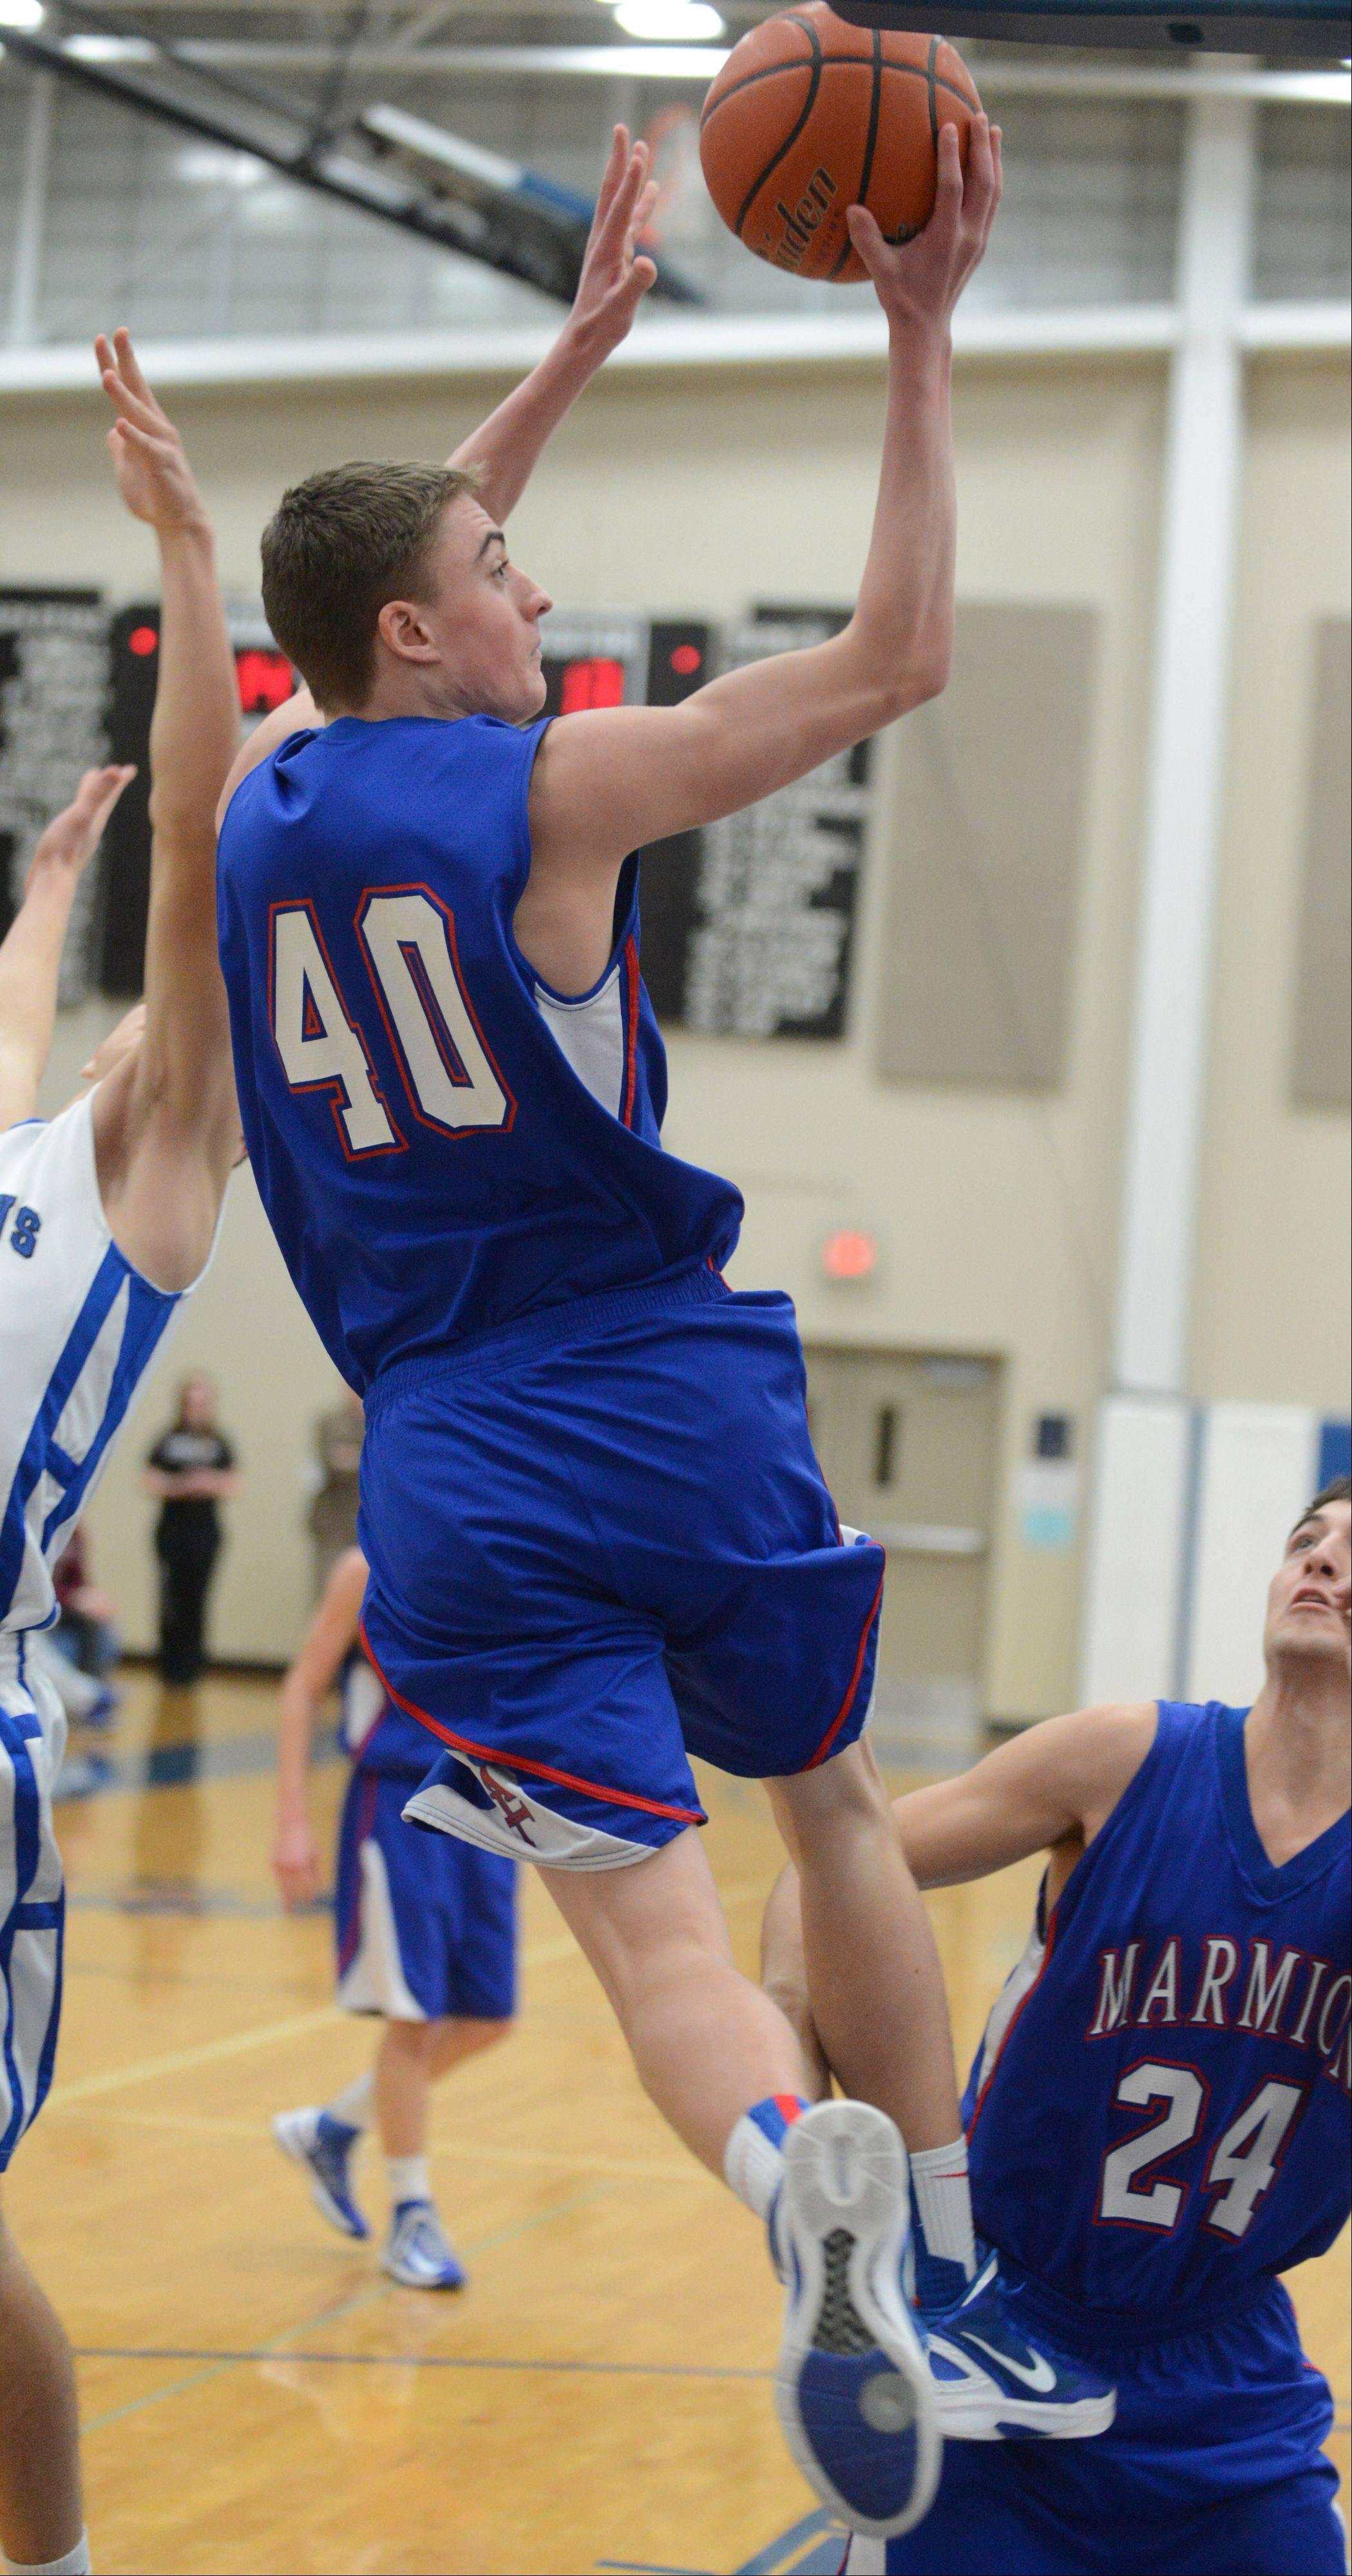 Tyler Maryanski of Marmion gets some air on the way to the net. This took place during the Marmion at St. Francis boys basketball game Tuesday in Wheaton